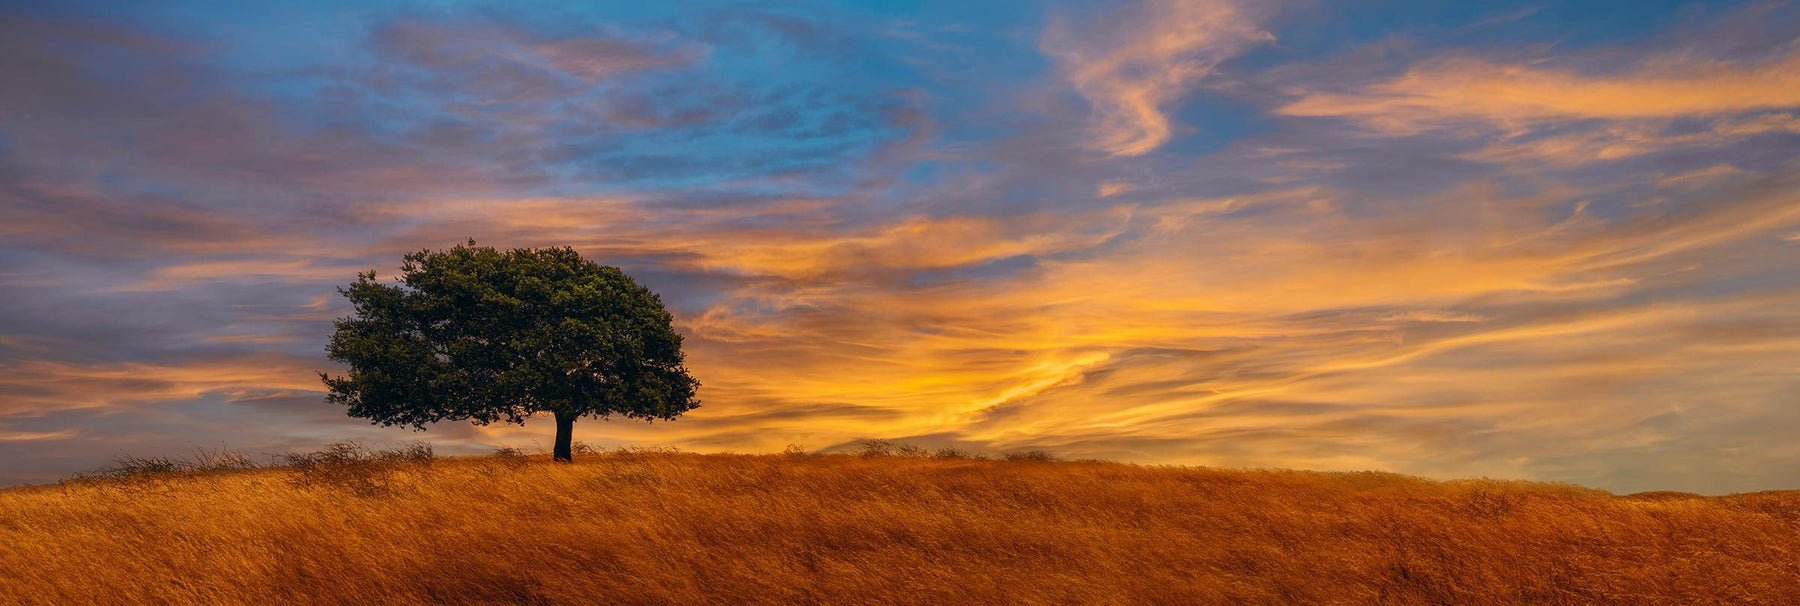 Single wind blown tree on a small brown grass field in California at sunset